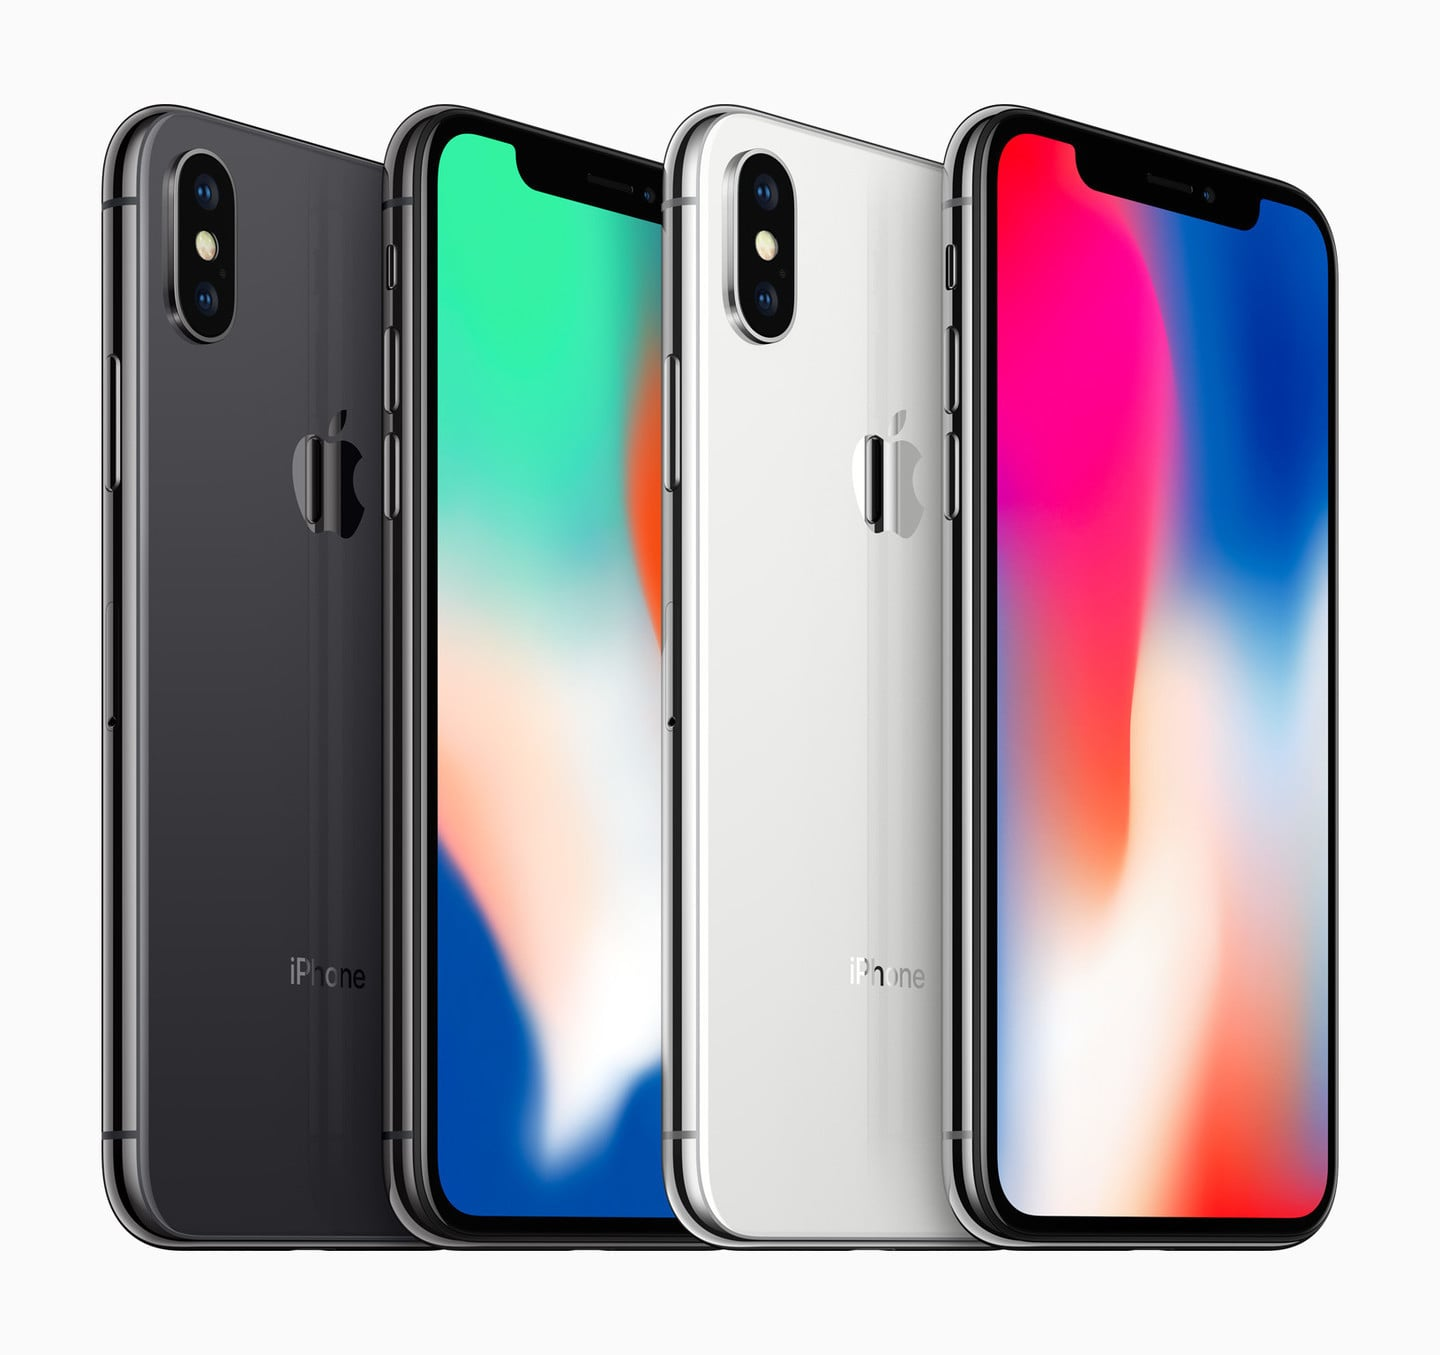 IPhone X available for pre-order on Friday, October 27